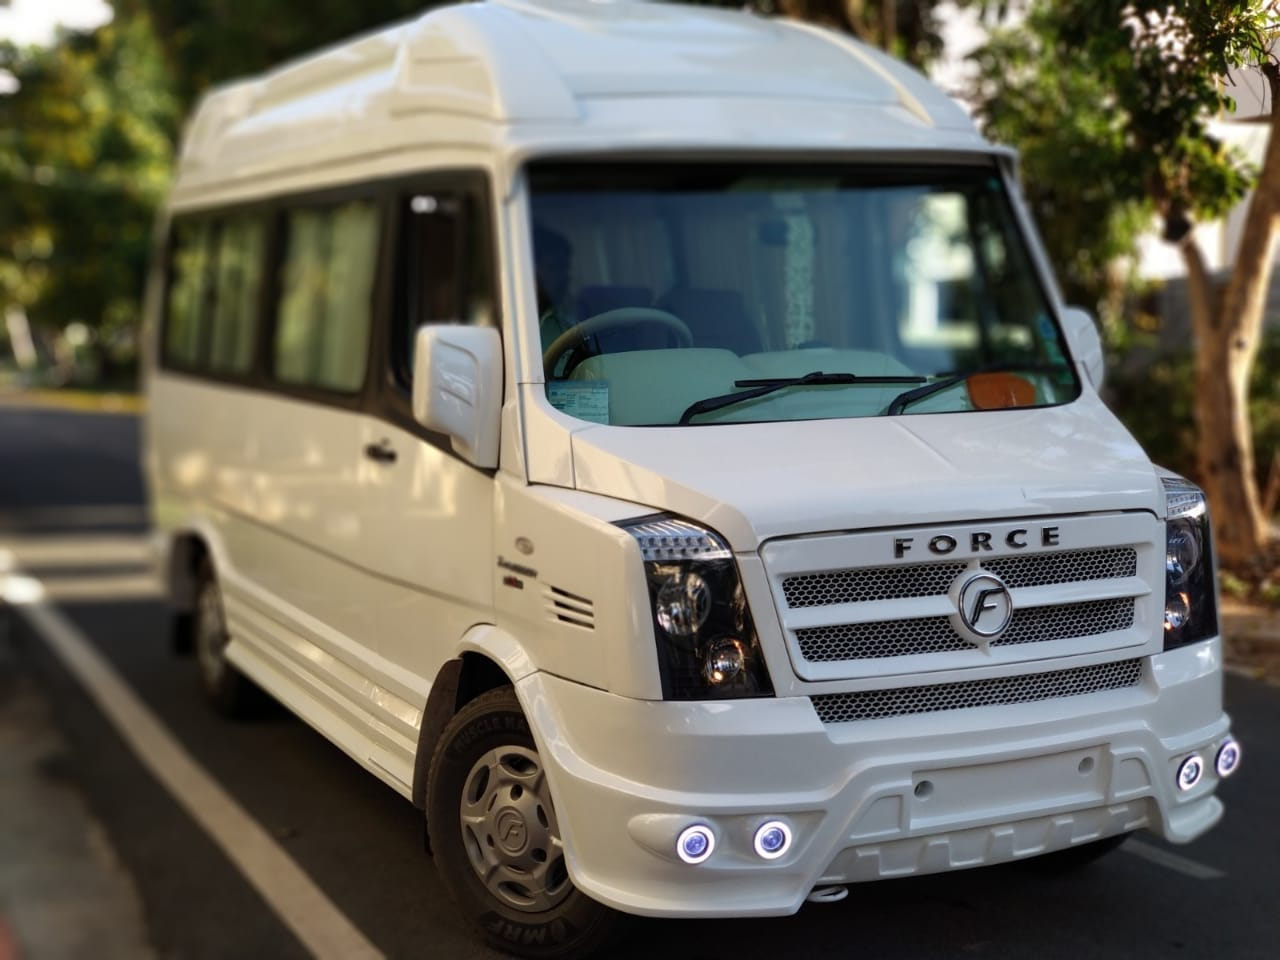 Outstation Tempo Traveller In Bangalore | GetMyCabs +91 9008644559 | tempo traveller in bangalore, 18 seater tempo traveller in bangalore, tempo traveller rent in bangalore,  outstation 12 seater tempo traveller bangalore,  - GL27796